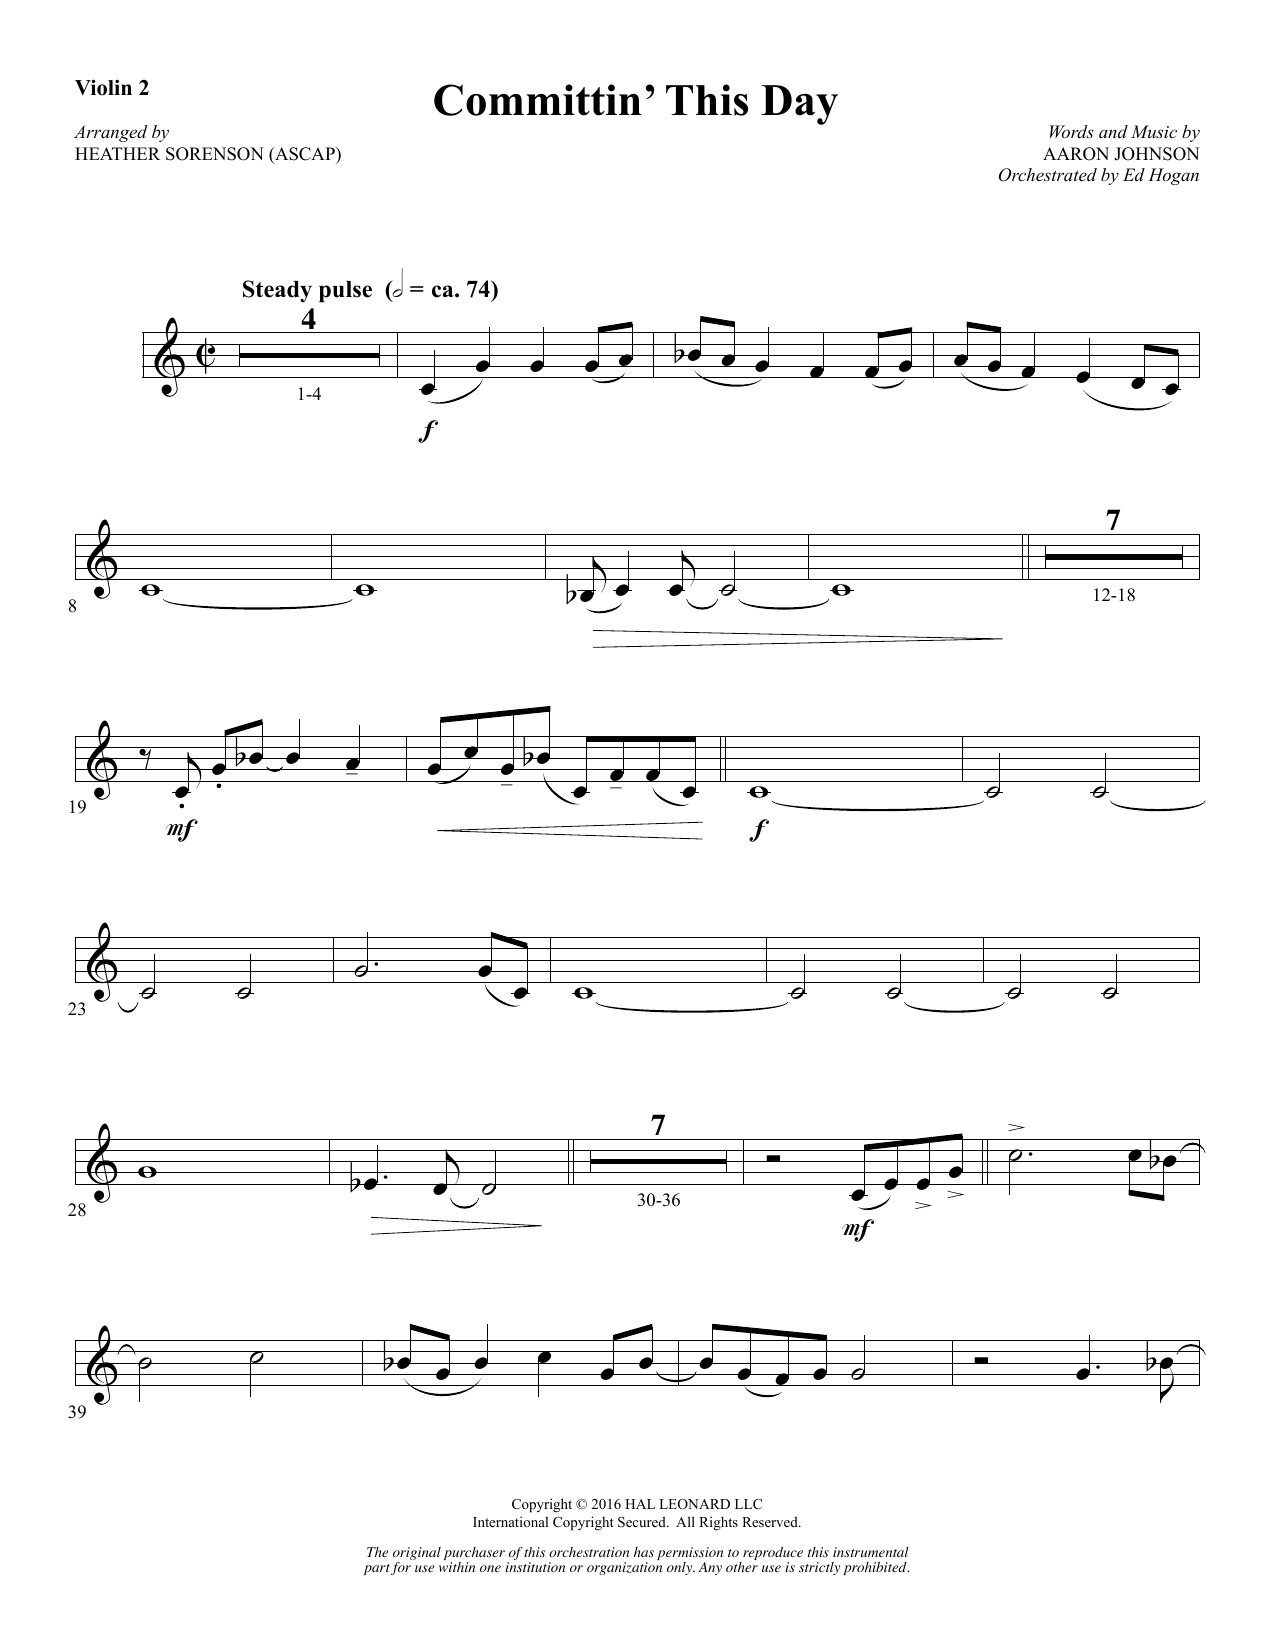 Heather Sorenson Committin' This Day - Violin 2 sheet music notes and chords. Download Printable PDF.